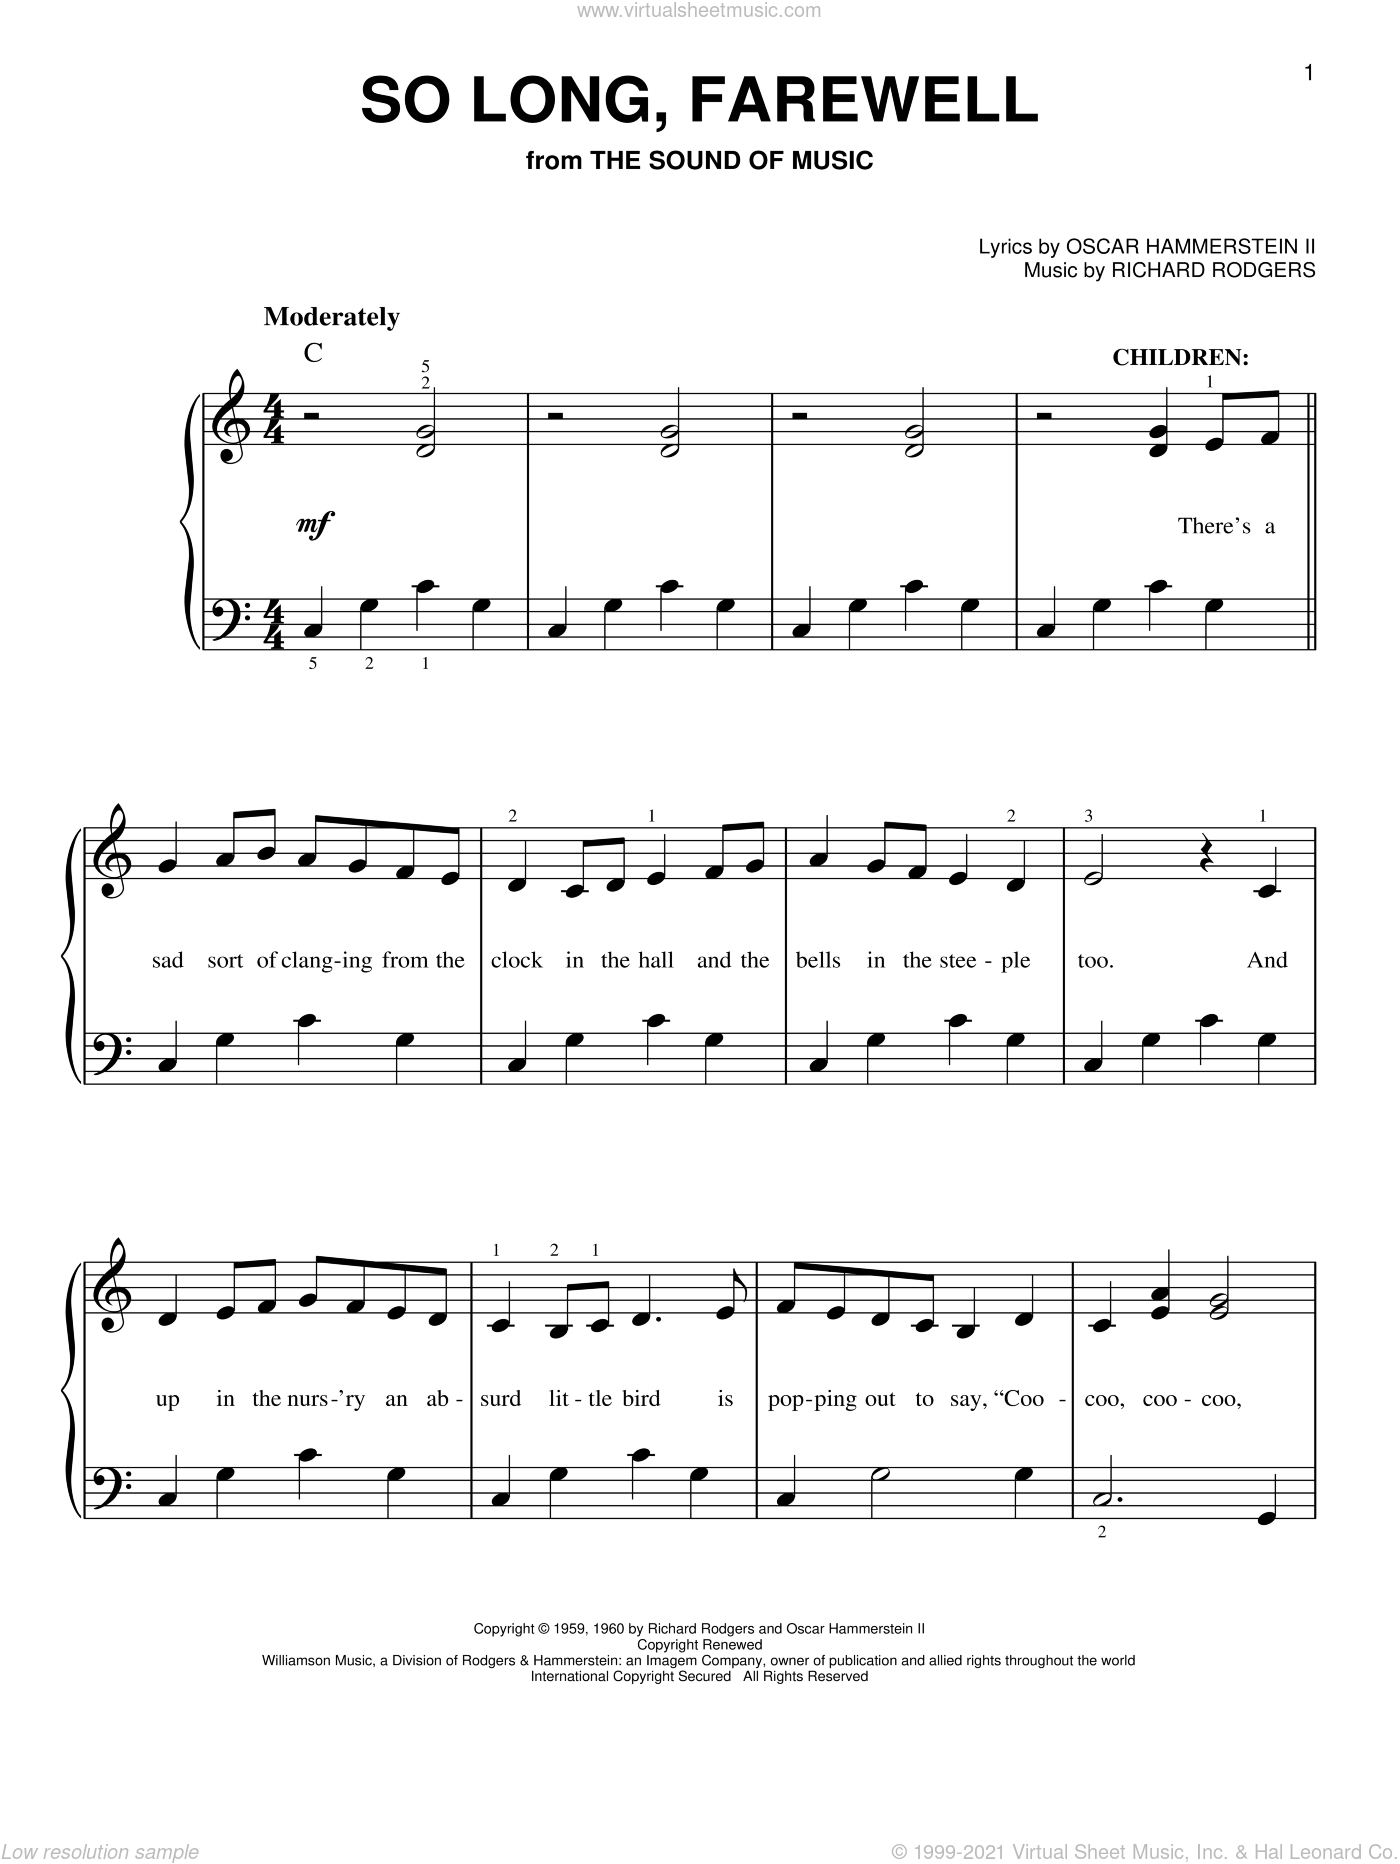 So Long, Farewell (from The Sound of Music) sheet music for piano solo by Rodgers & Hammerstein, The Sound Of Music (Musical), Oscar II Hammerstein and Richard Rodgers, easy skill level